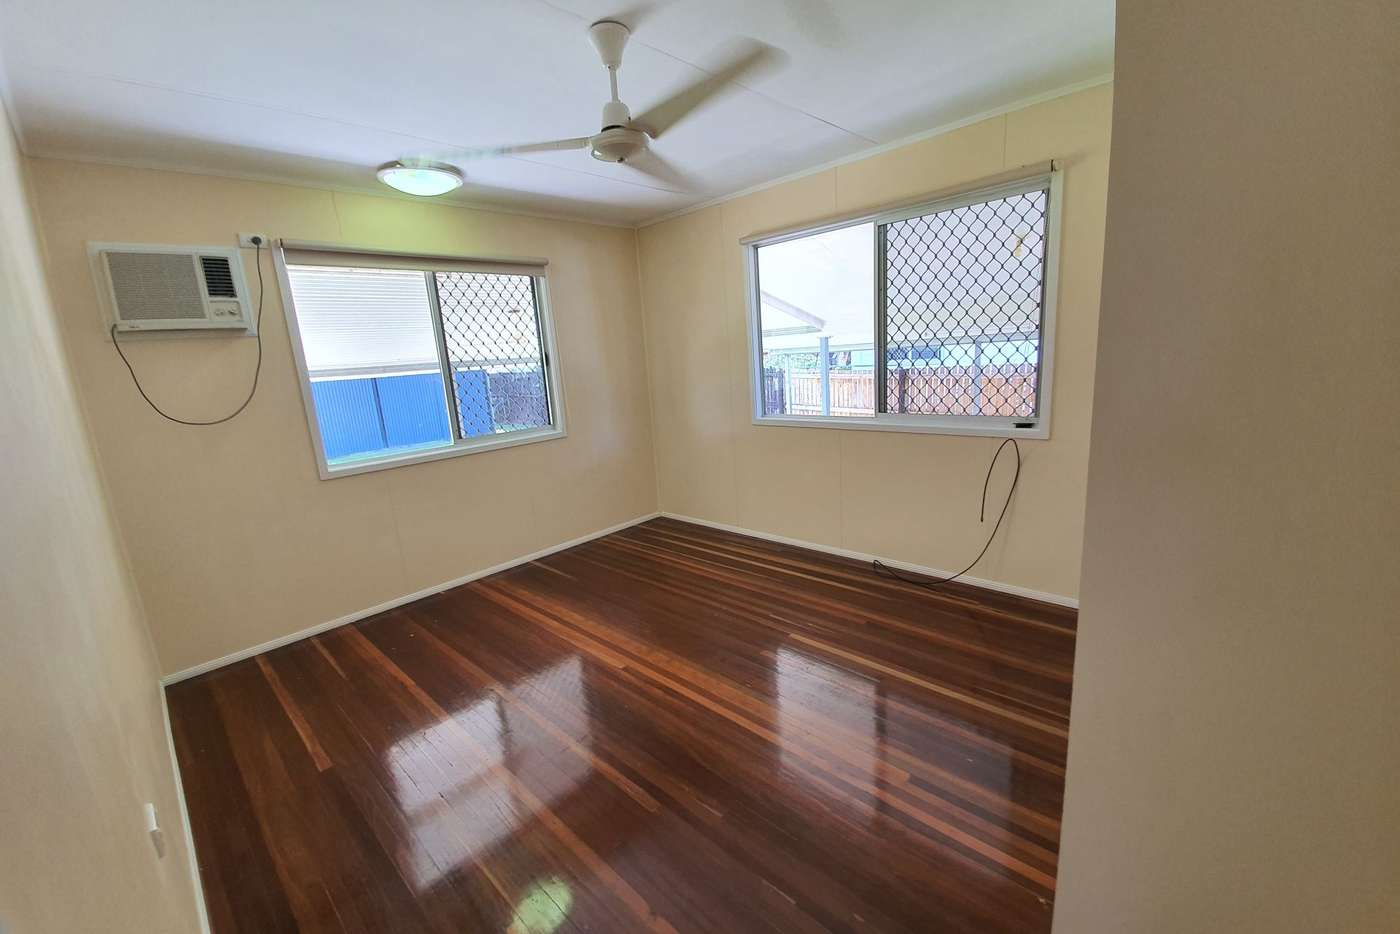 Sixth view of Homely house listing, 25 Enmore Street, Manoora QLD 4870